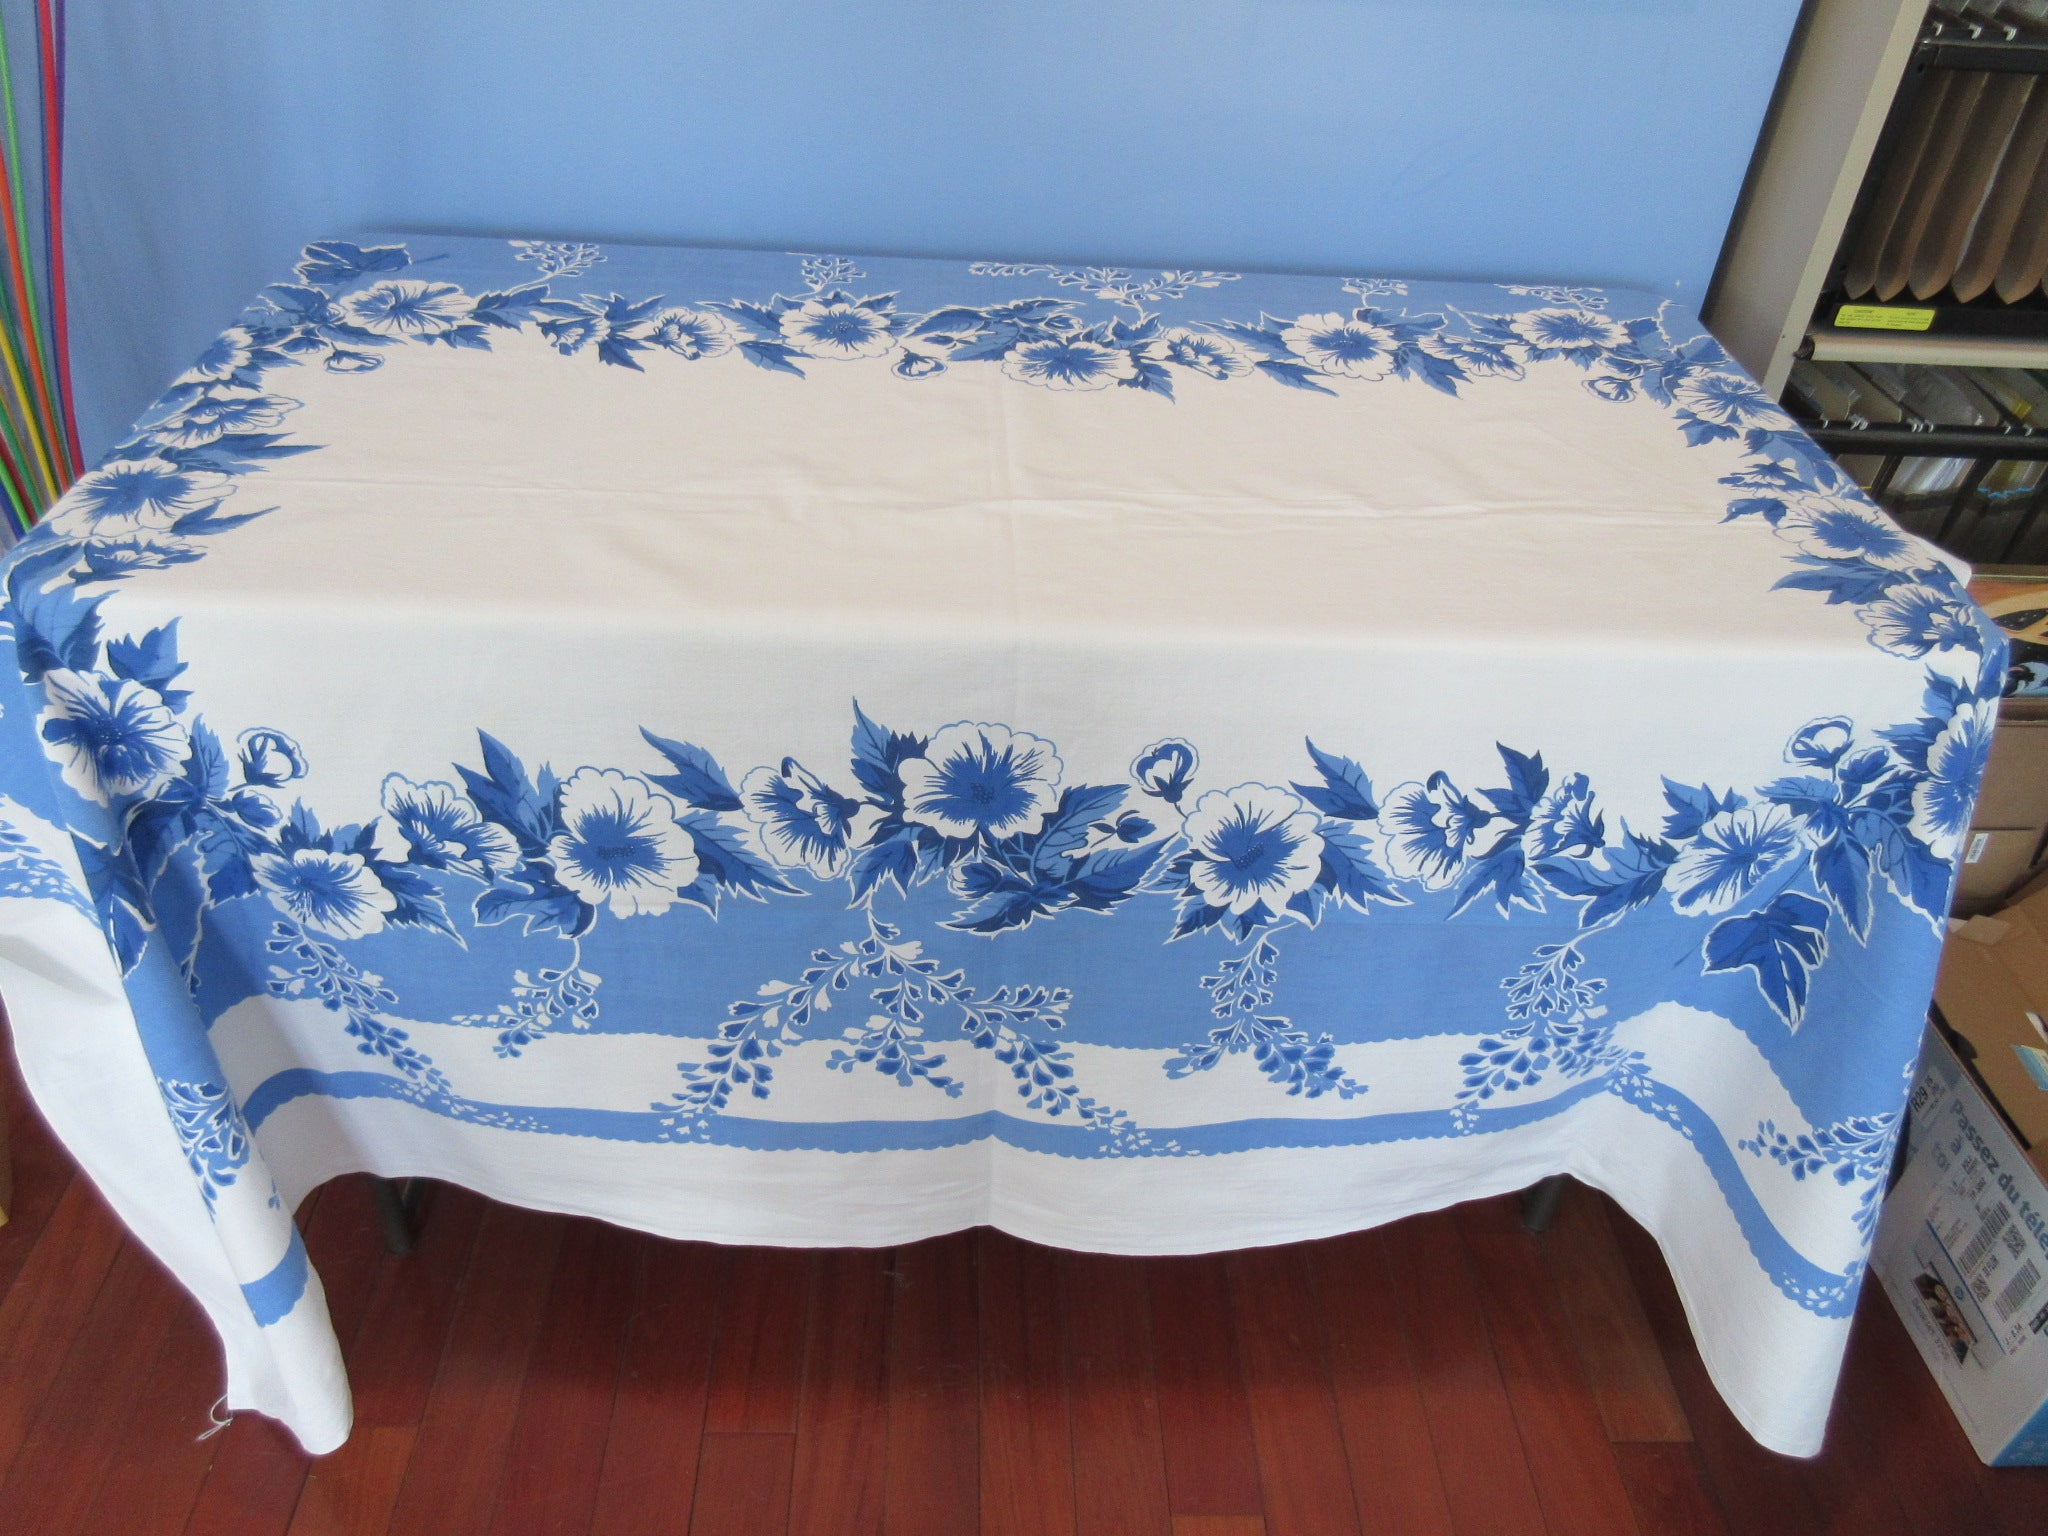 Large Single Color Blue Hibiscus Floral Vintage Printed Tablecloth (80 X 58)